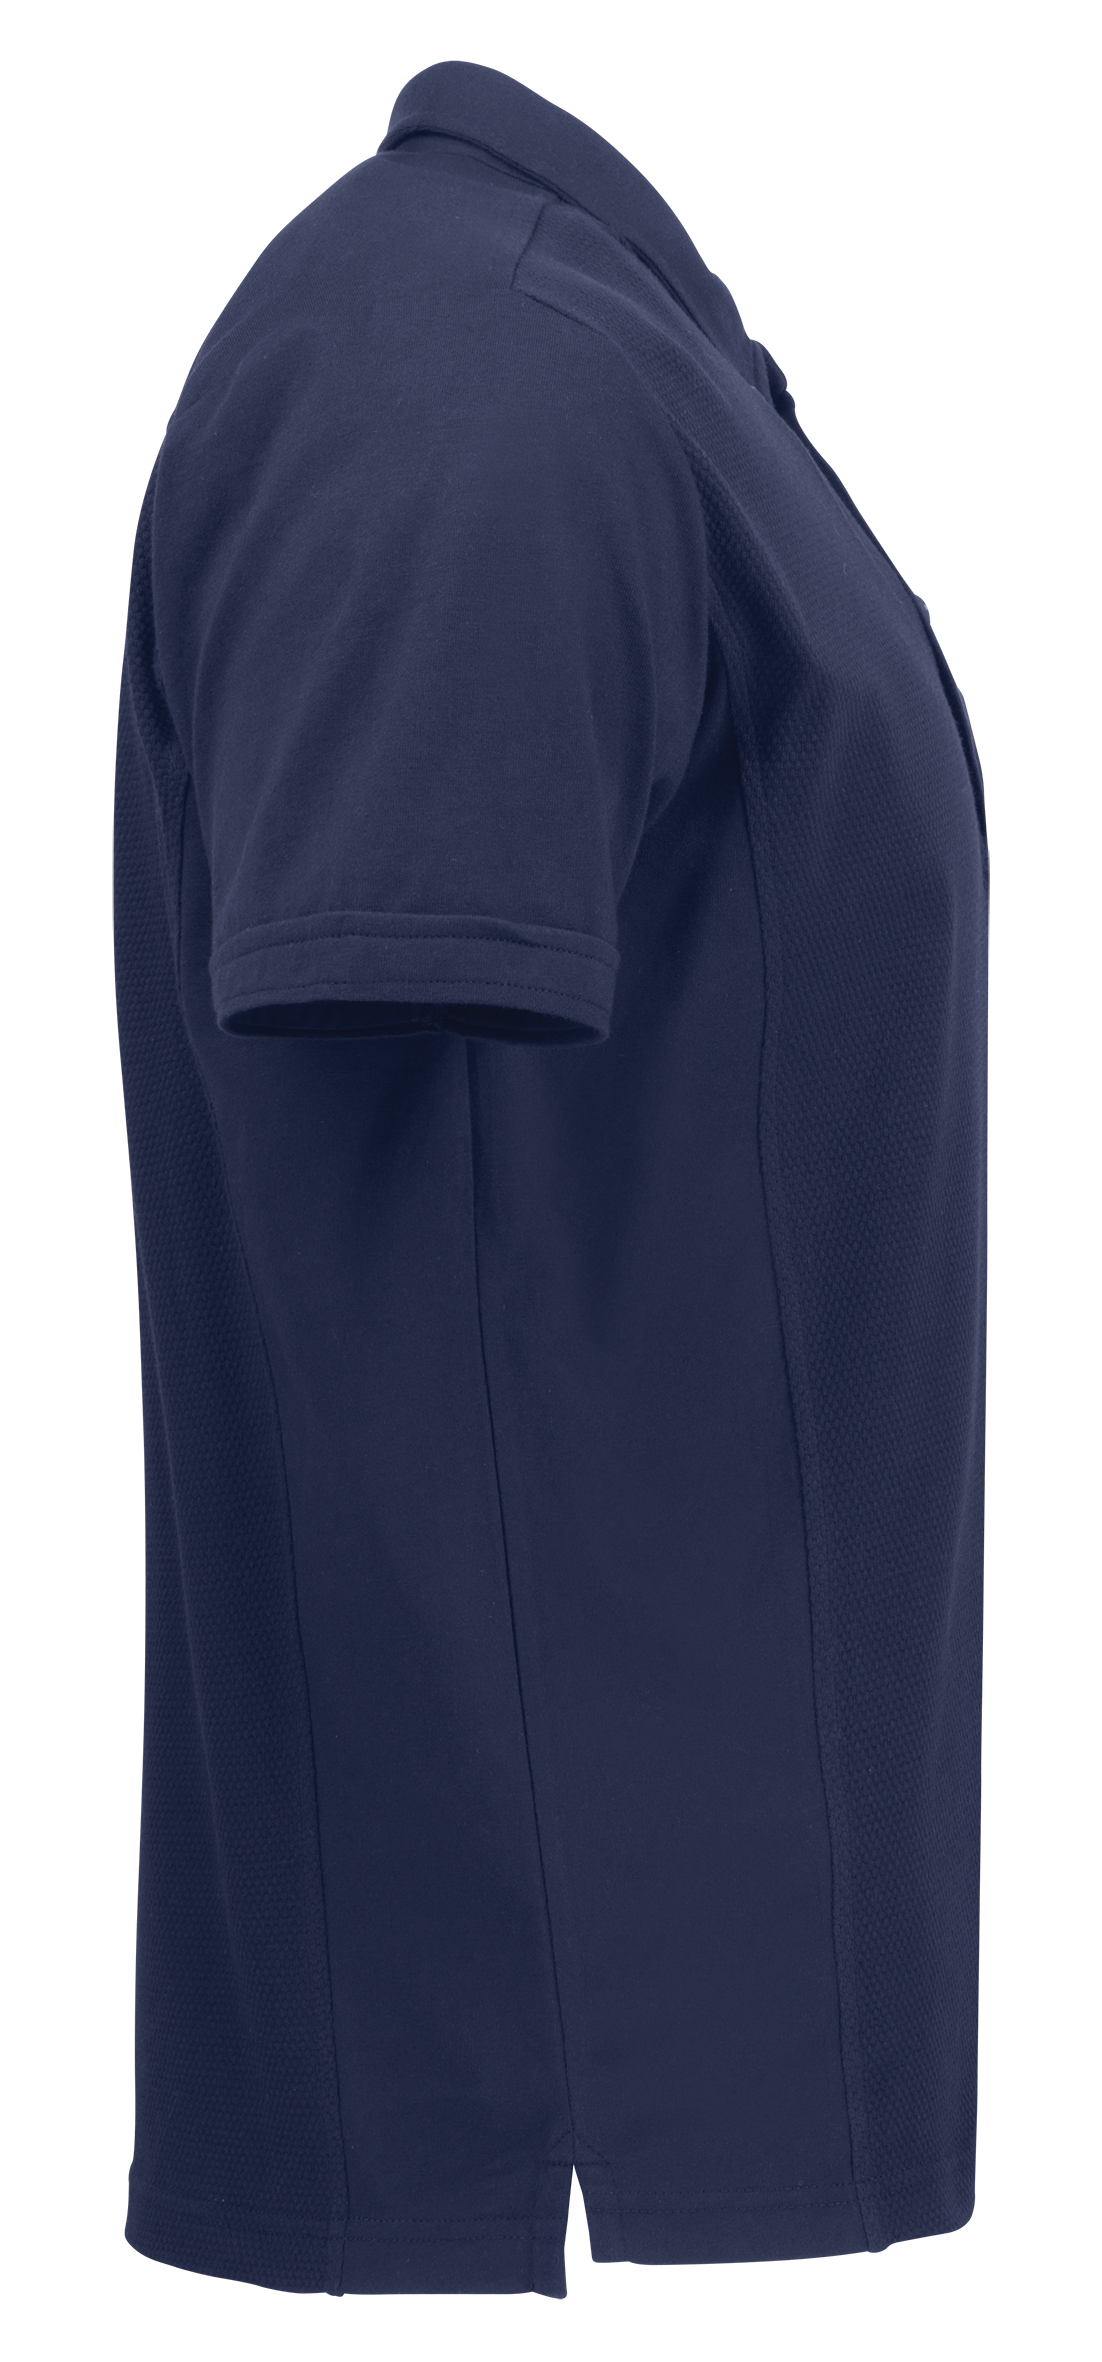 Shellden in 600 Navy Side View